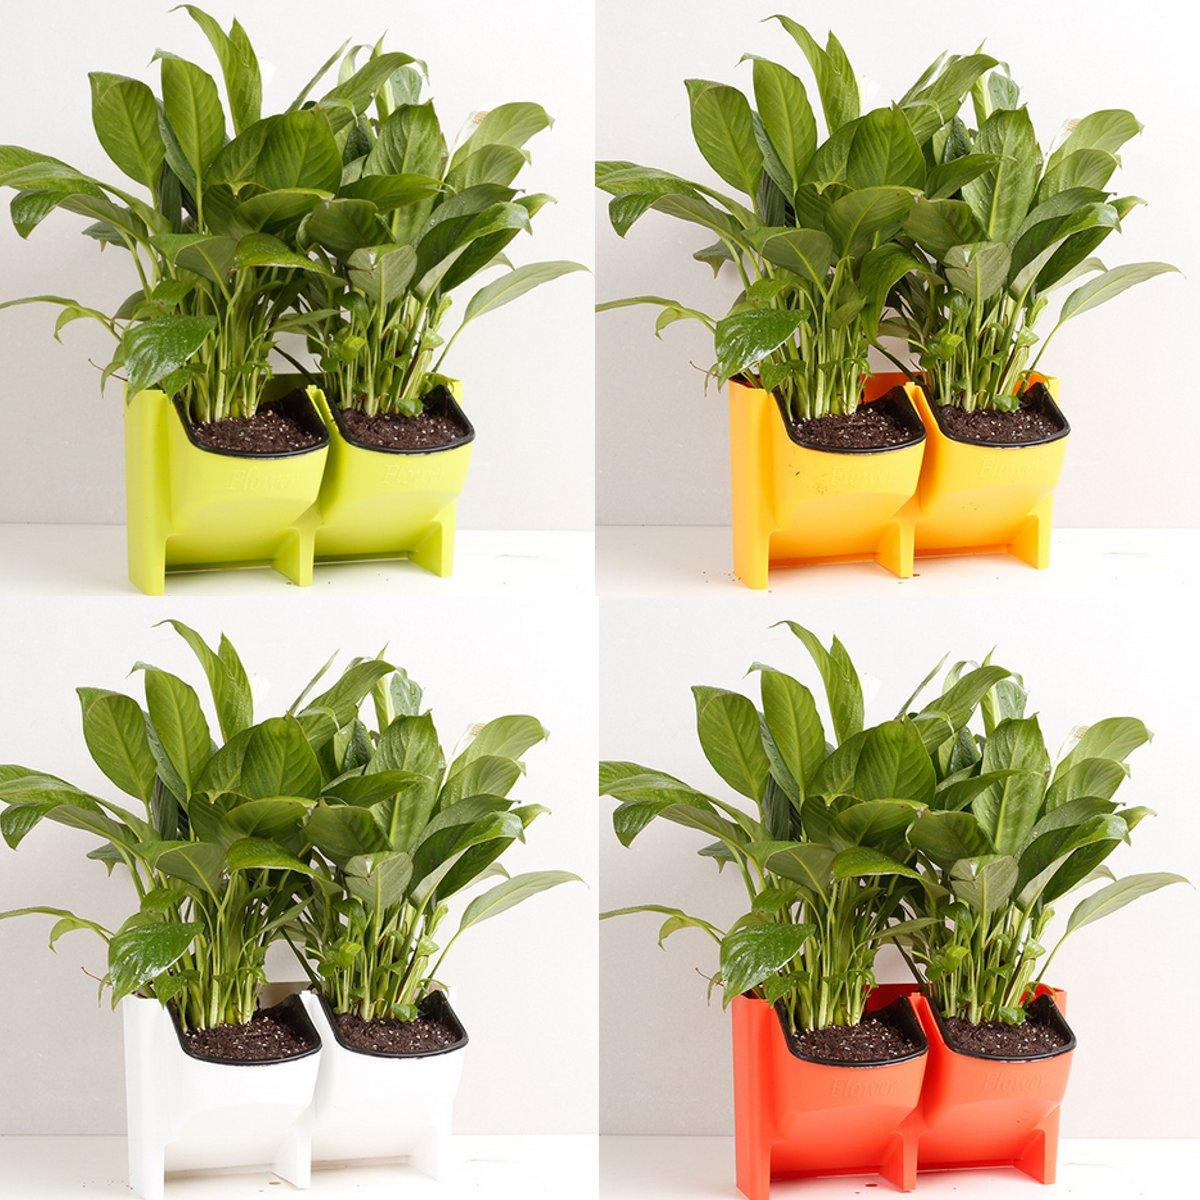 Blumen Im Topf 2 Pocket Vertical Wall Planter Self Watering Hanging Blumen Topf Garten Dekoration